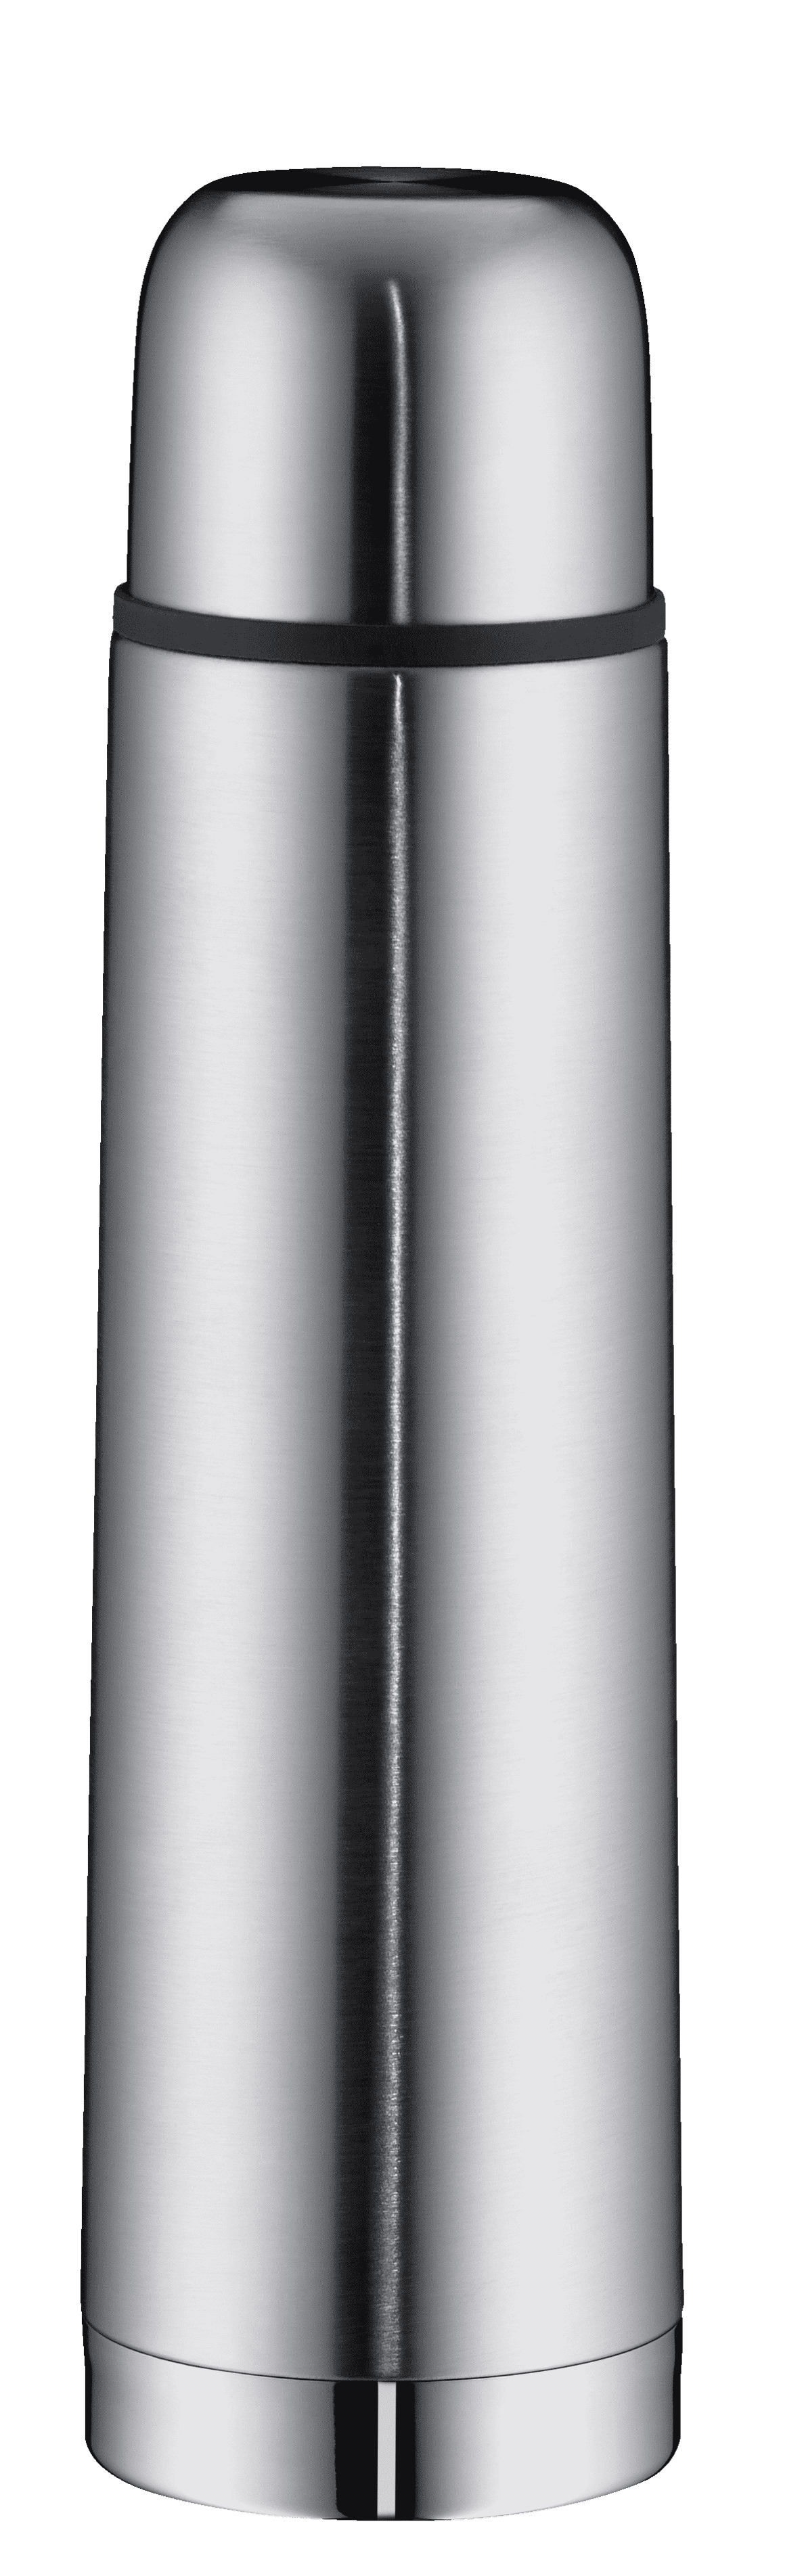 THERMOS  4058.205.070 Everyday  Isolierflasche in Edelstahl | 05010576921529